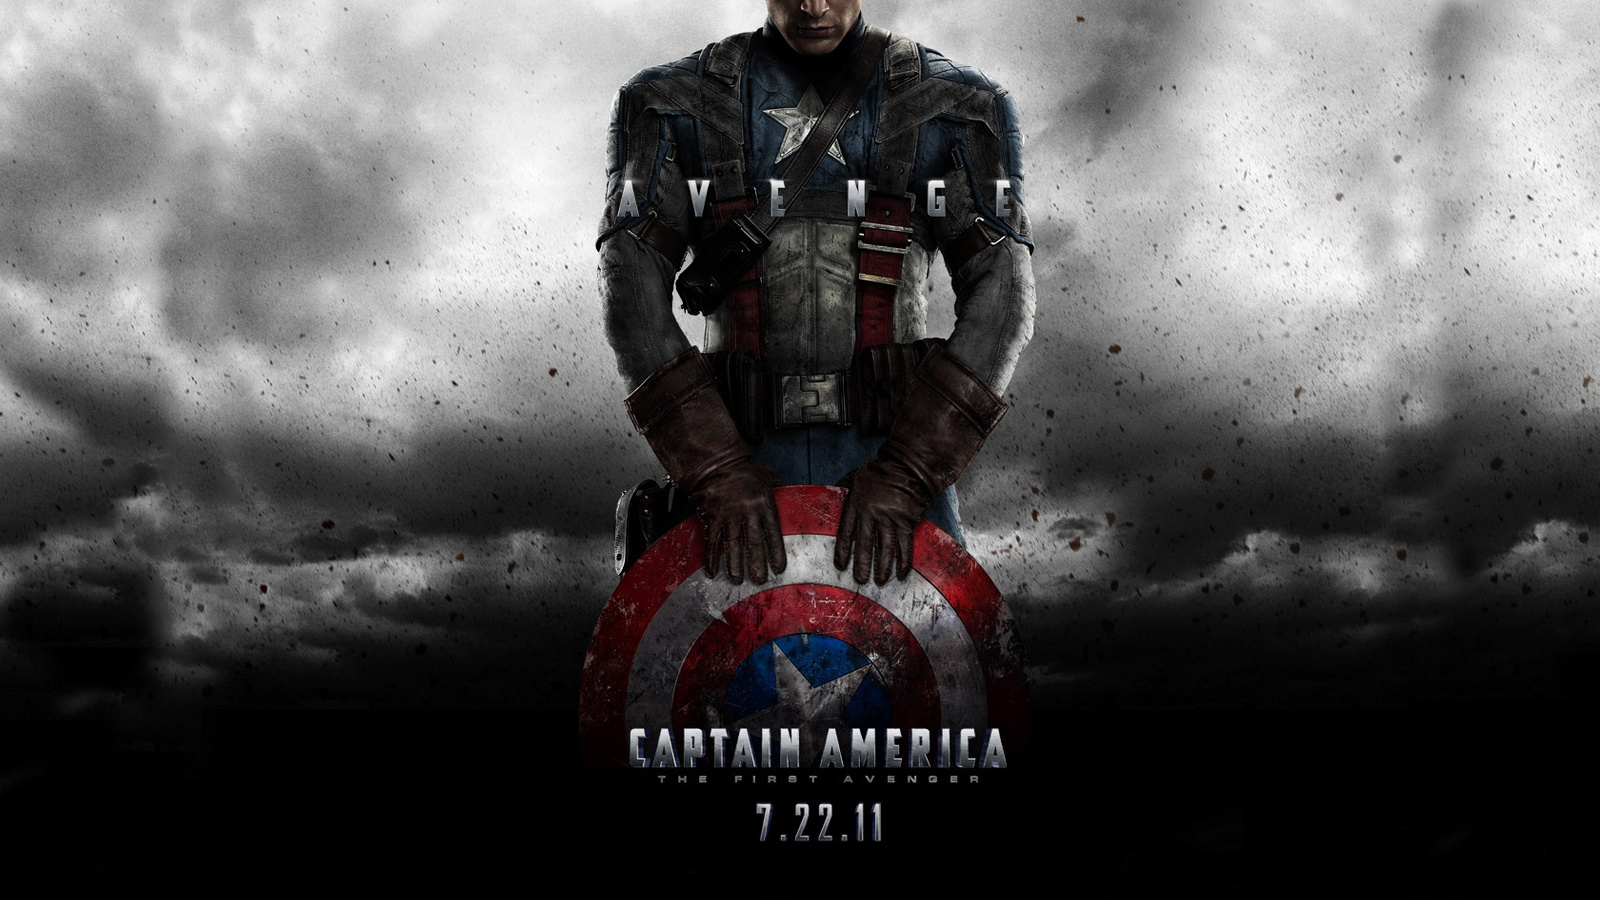 captain america new movie on Captain America 2011 Movie Wallpaper